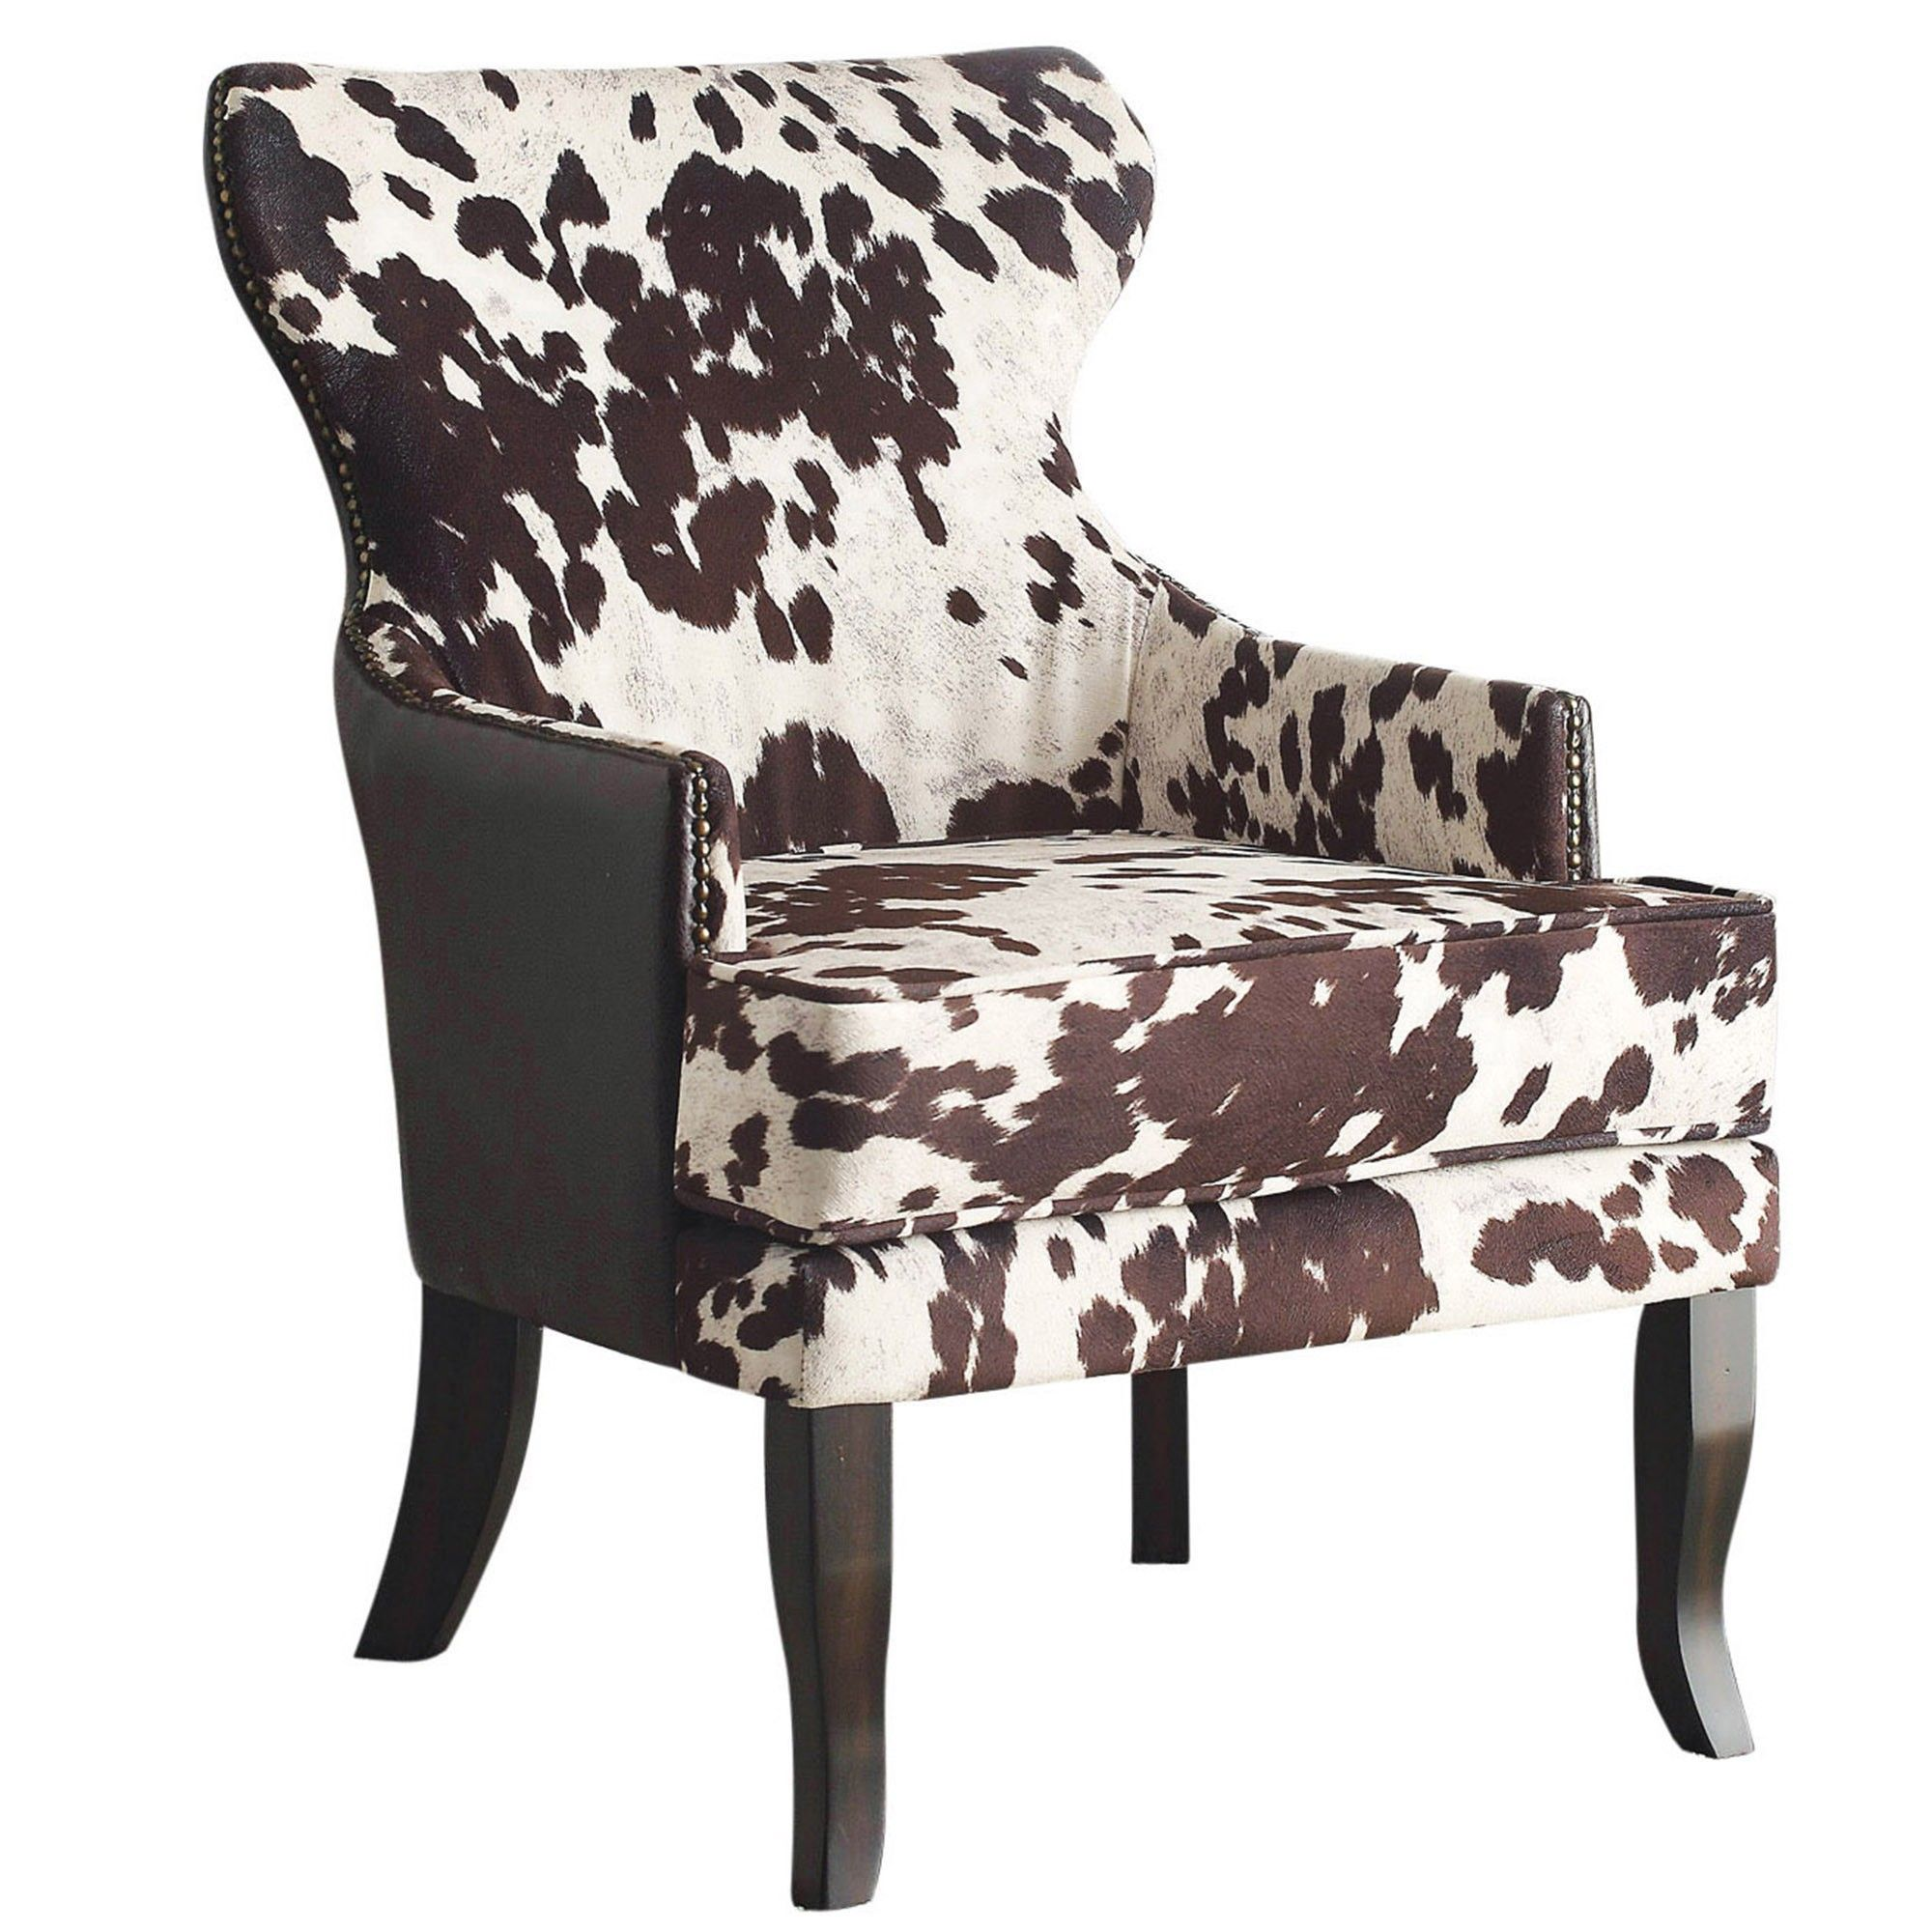 Best Angus Ii Accent Chair Upholstered Chairs Accent Chairs Accent Chairs For Living Room 400 x 300